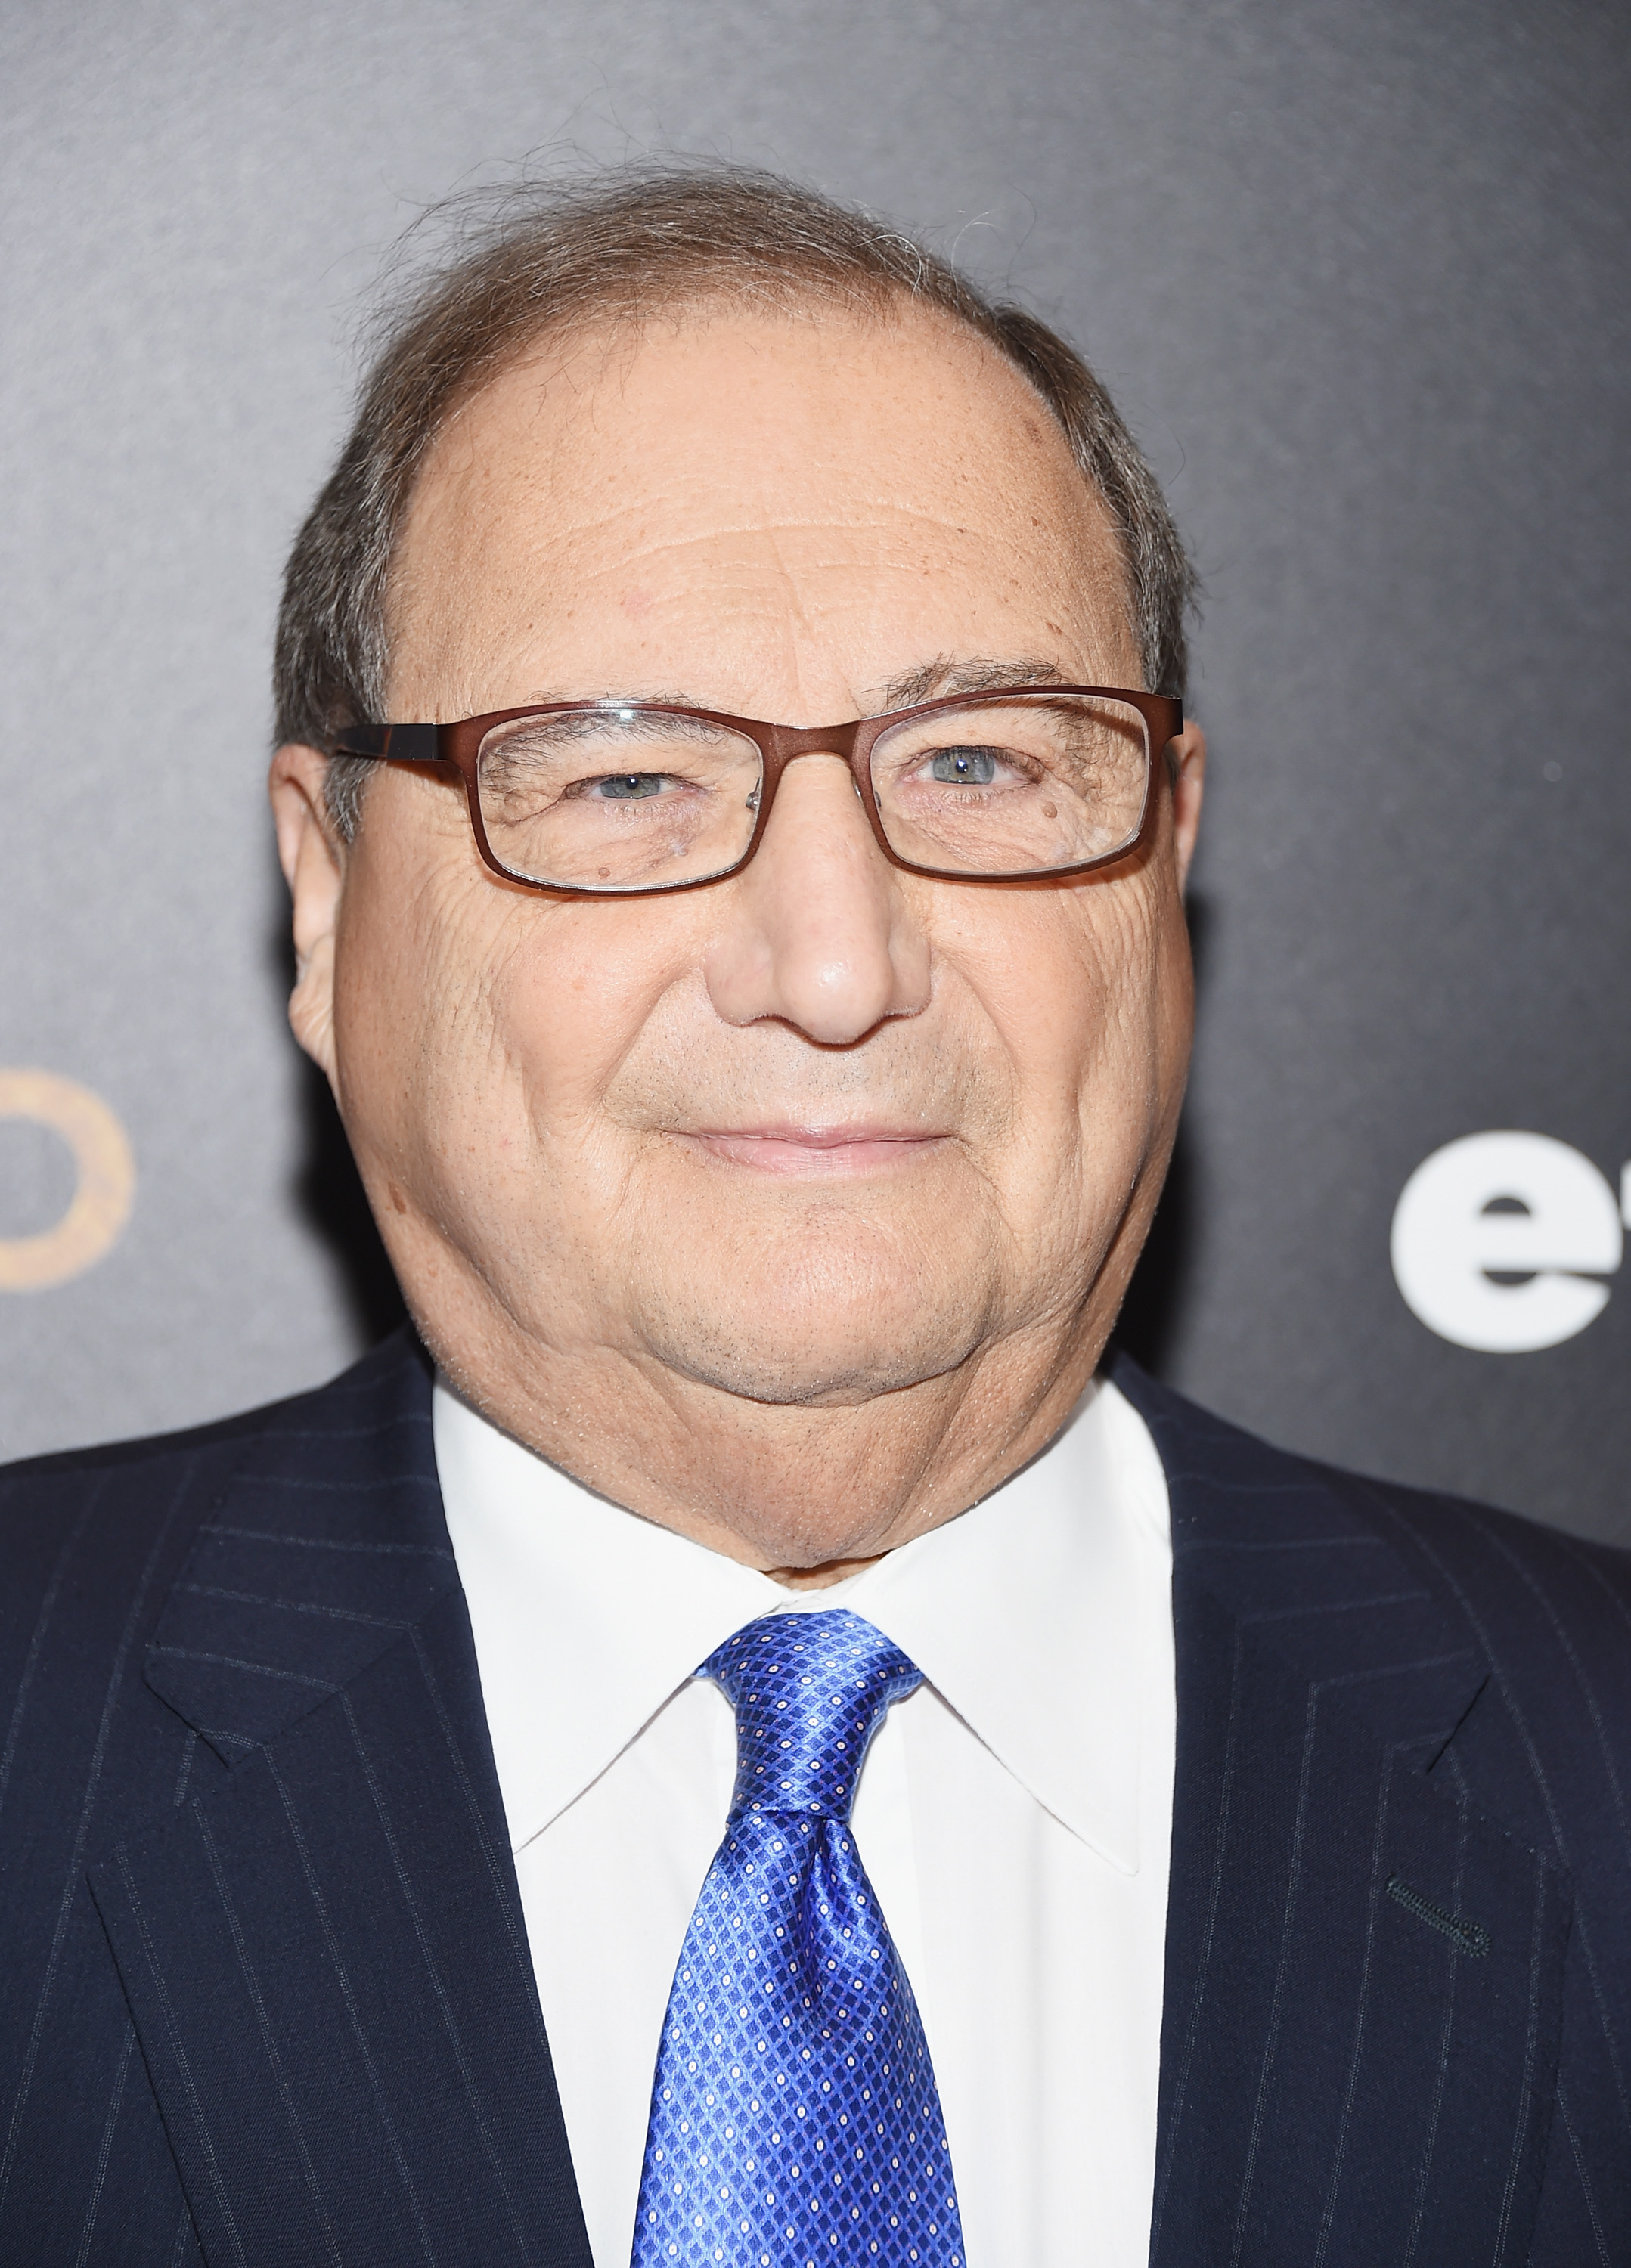 Anti-Defamation League director Abraham 'Abe' Foxman attends the 'Woman In Gold' New York premiere at The Museum of Modern Art on March 30, 2015 in New York City.